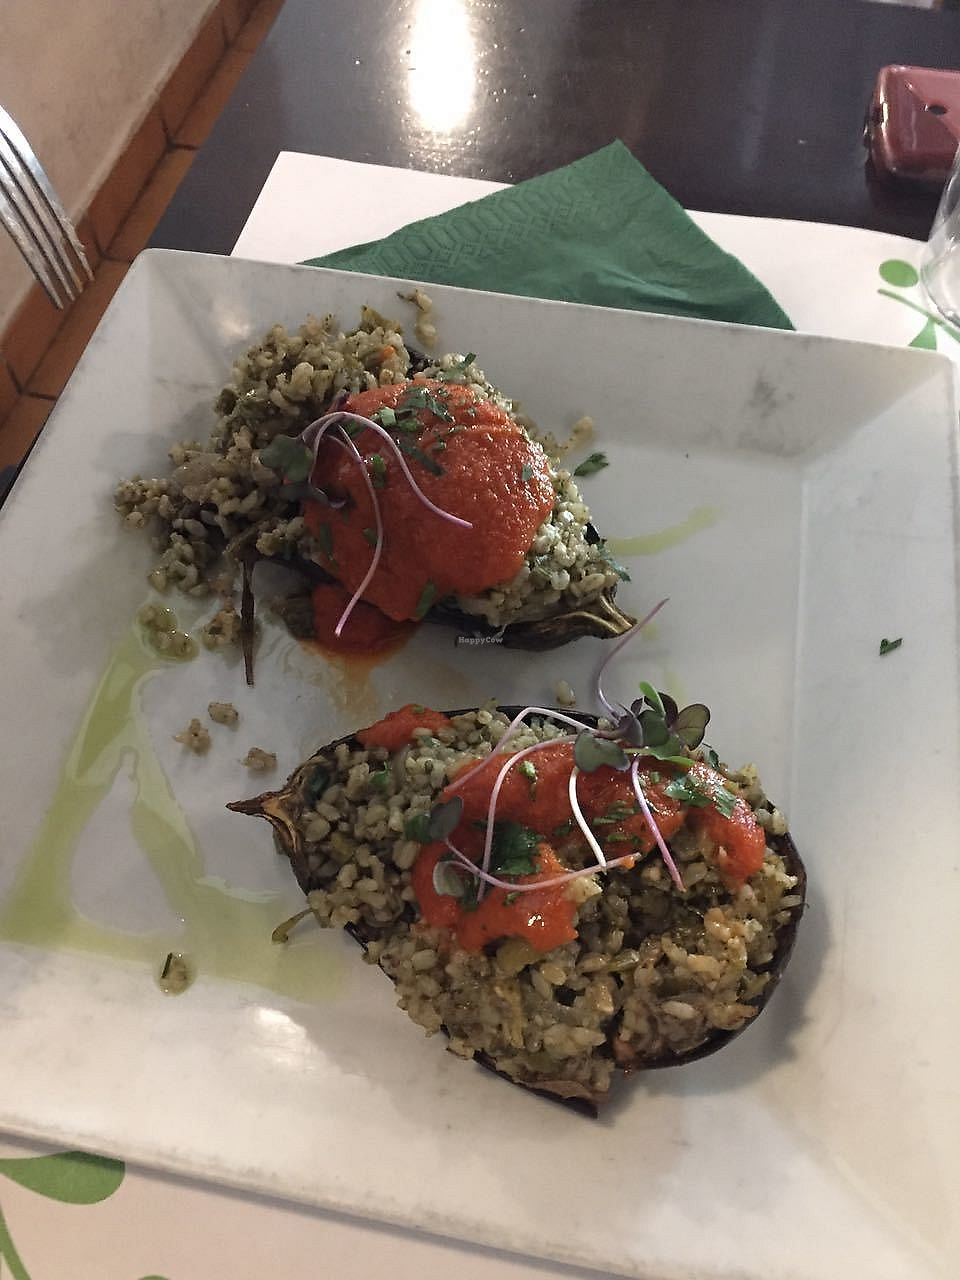 """Photo of Vegetariano El Calafate  by <a href=""""/members/profile/FlokiTheCat"""">FlokiTheCat</a> <br/>Stuffed eggplants <br/> October 6, 2017  - <a href='/contact/abuse/image/25756/312332'>Report</a>"""